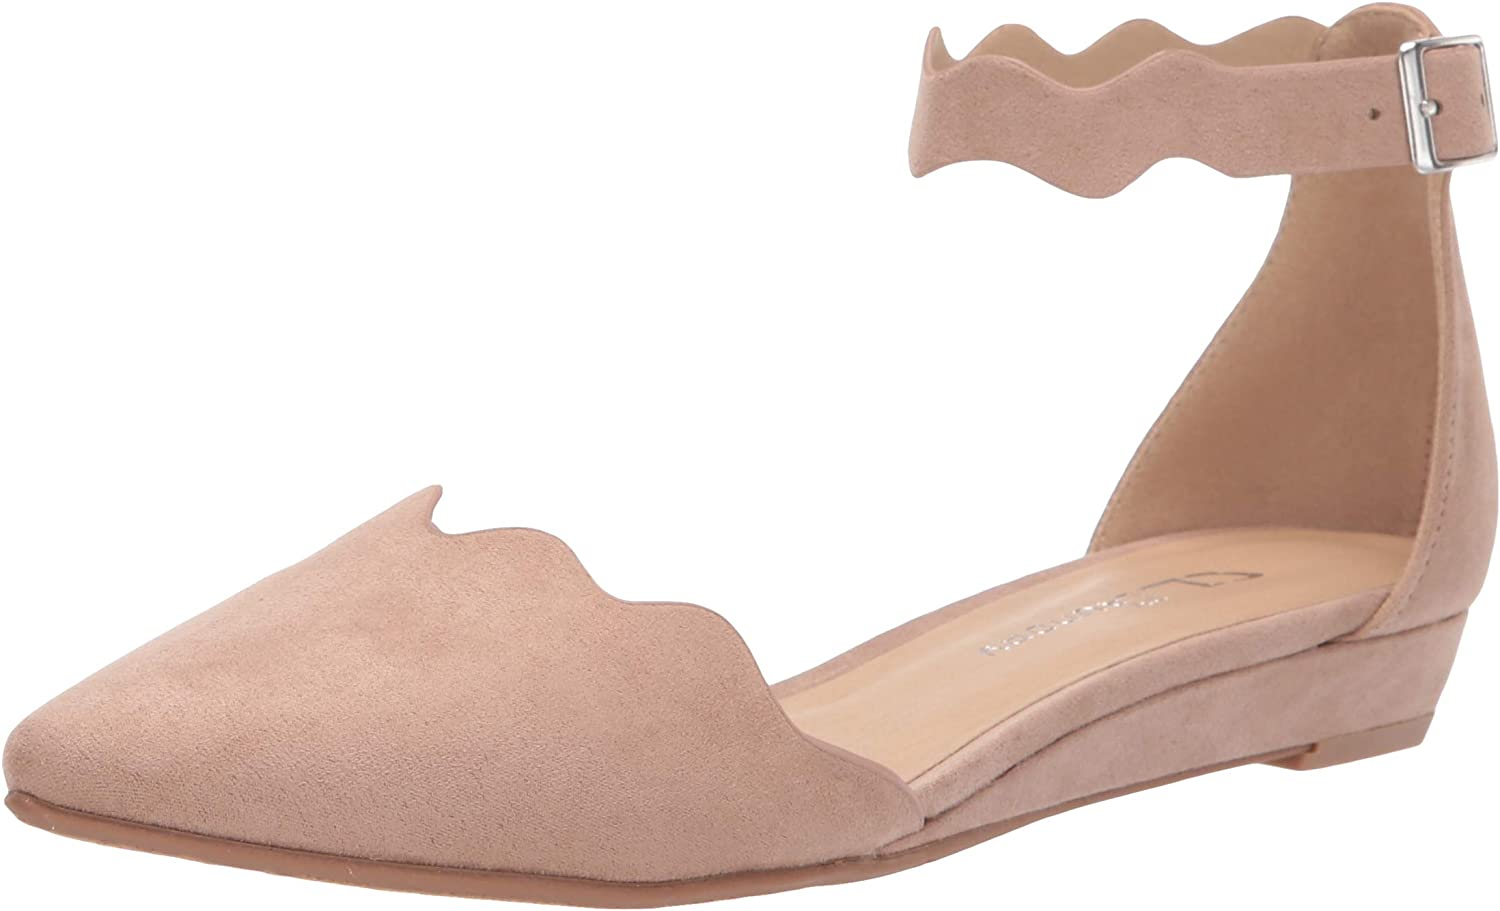 CL by Chinese Laundry Women's Studio Pointed Toe Two Piece Flat